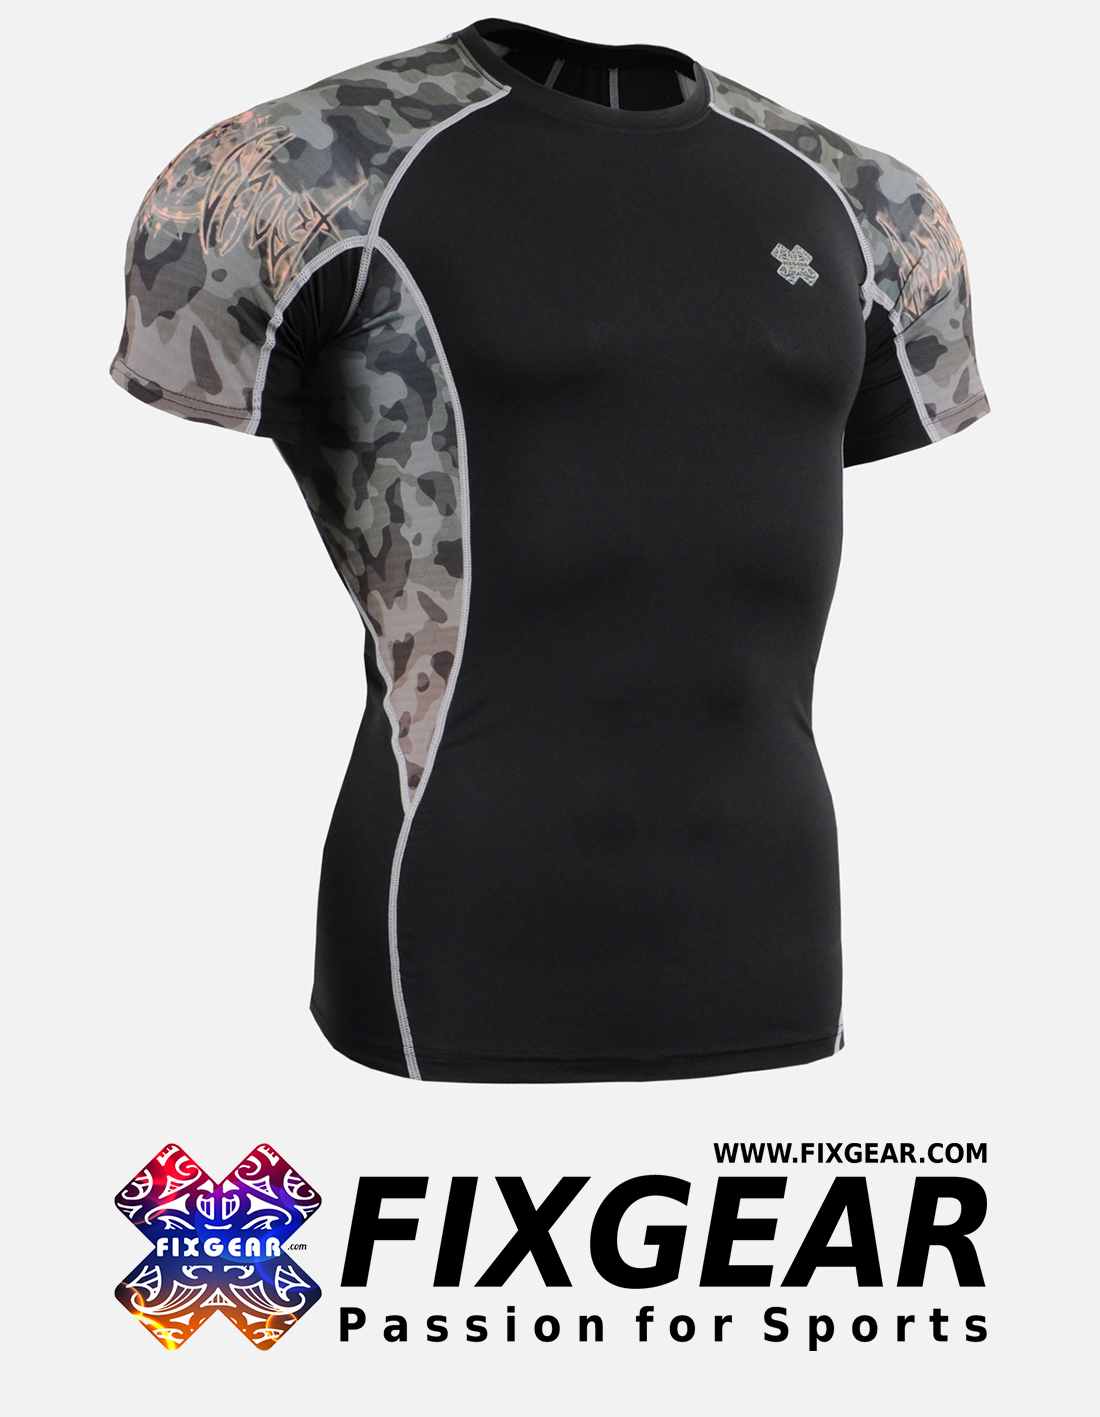 FIXGEAR C2S-B45 Compression Base Layer Shirt Short Sleeve